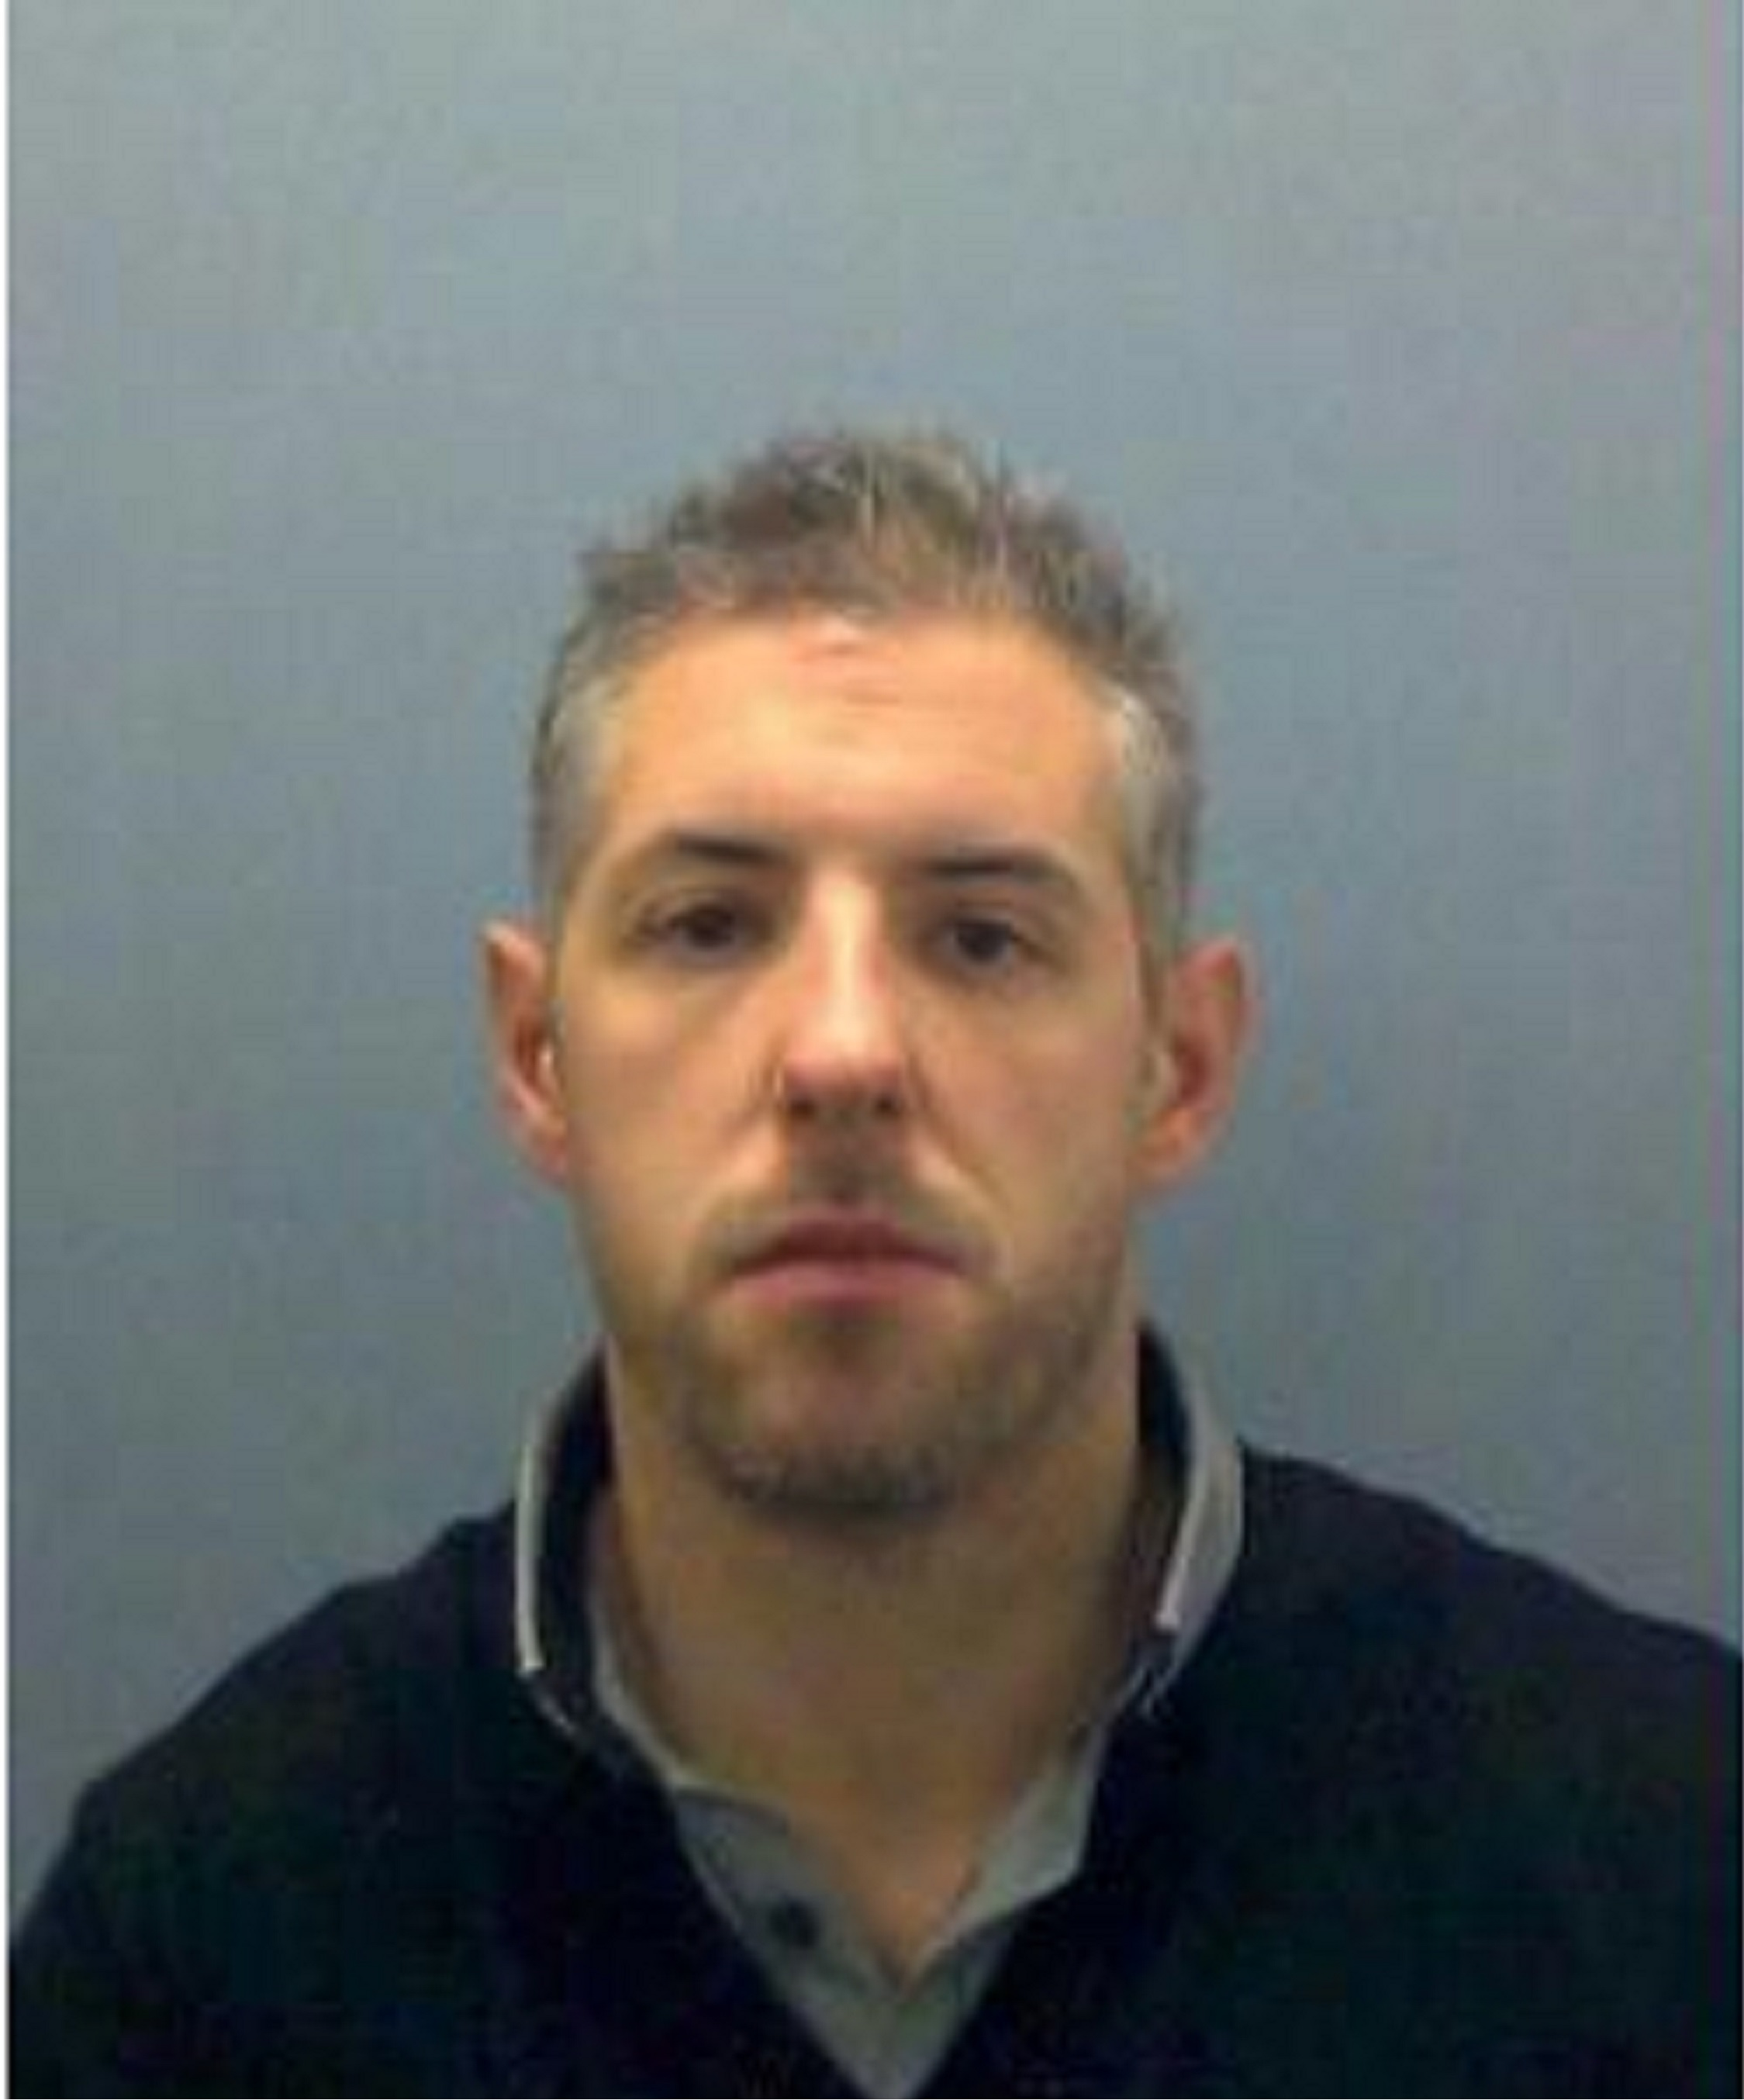 Thief who stole £1.3m from High Wycombe employer faces £150k bill